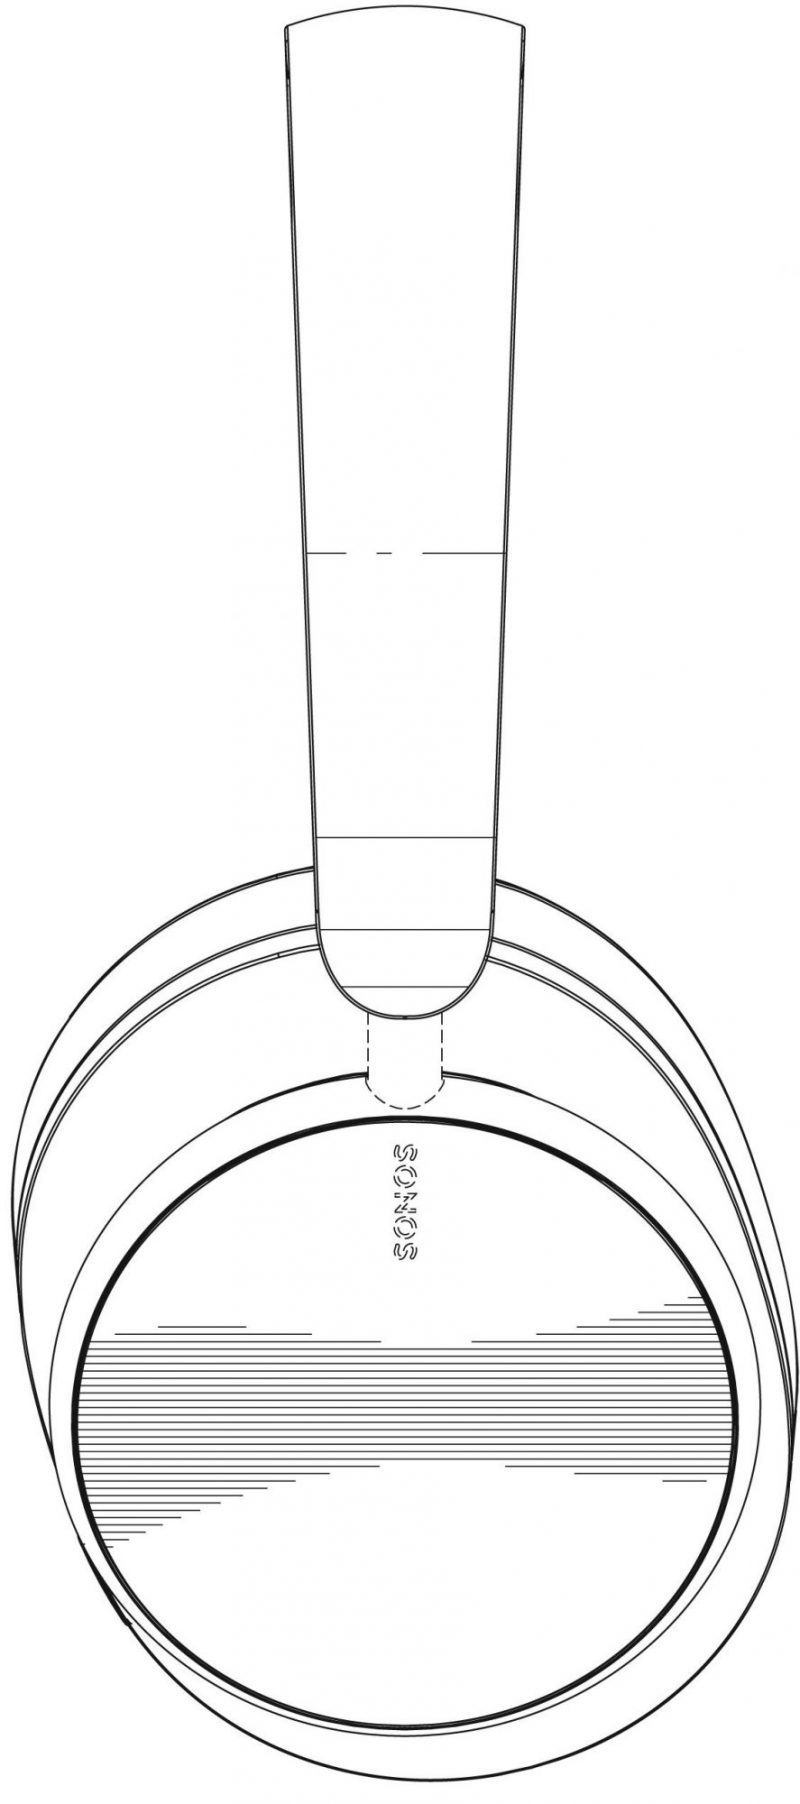 Sonos-headphones-5-887x2000